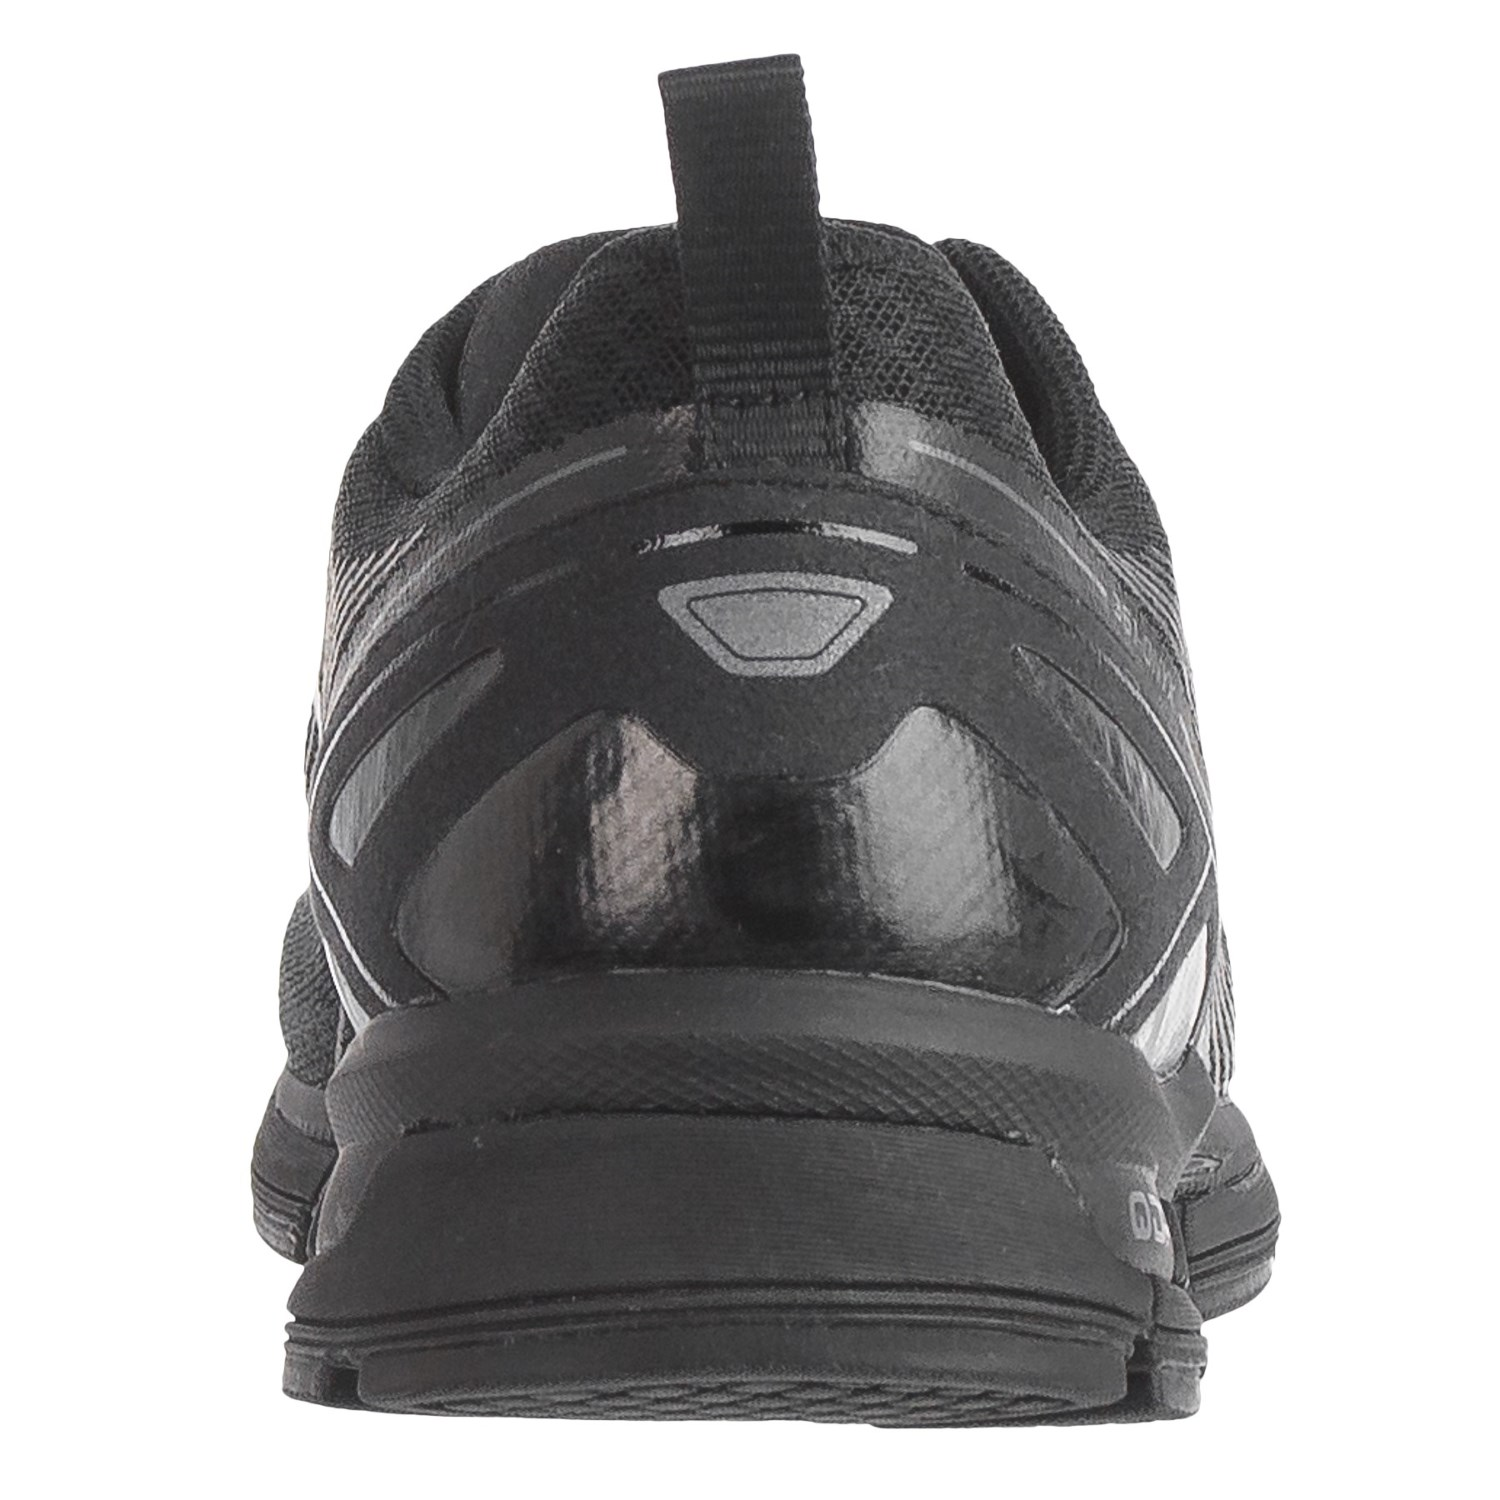 Degrees Onyx Running Shoes